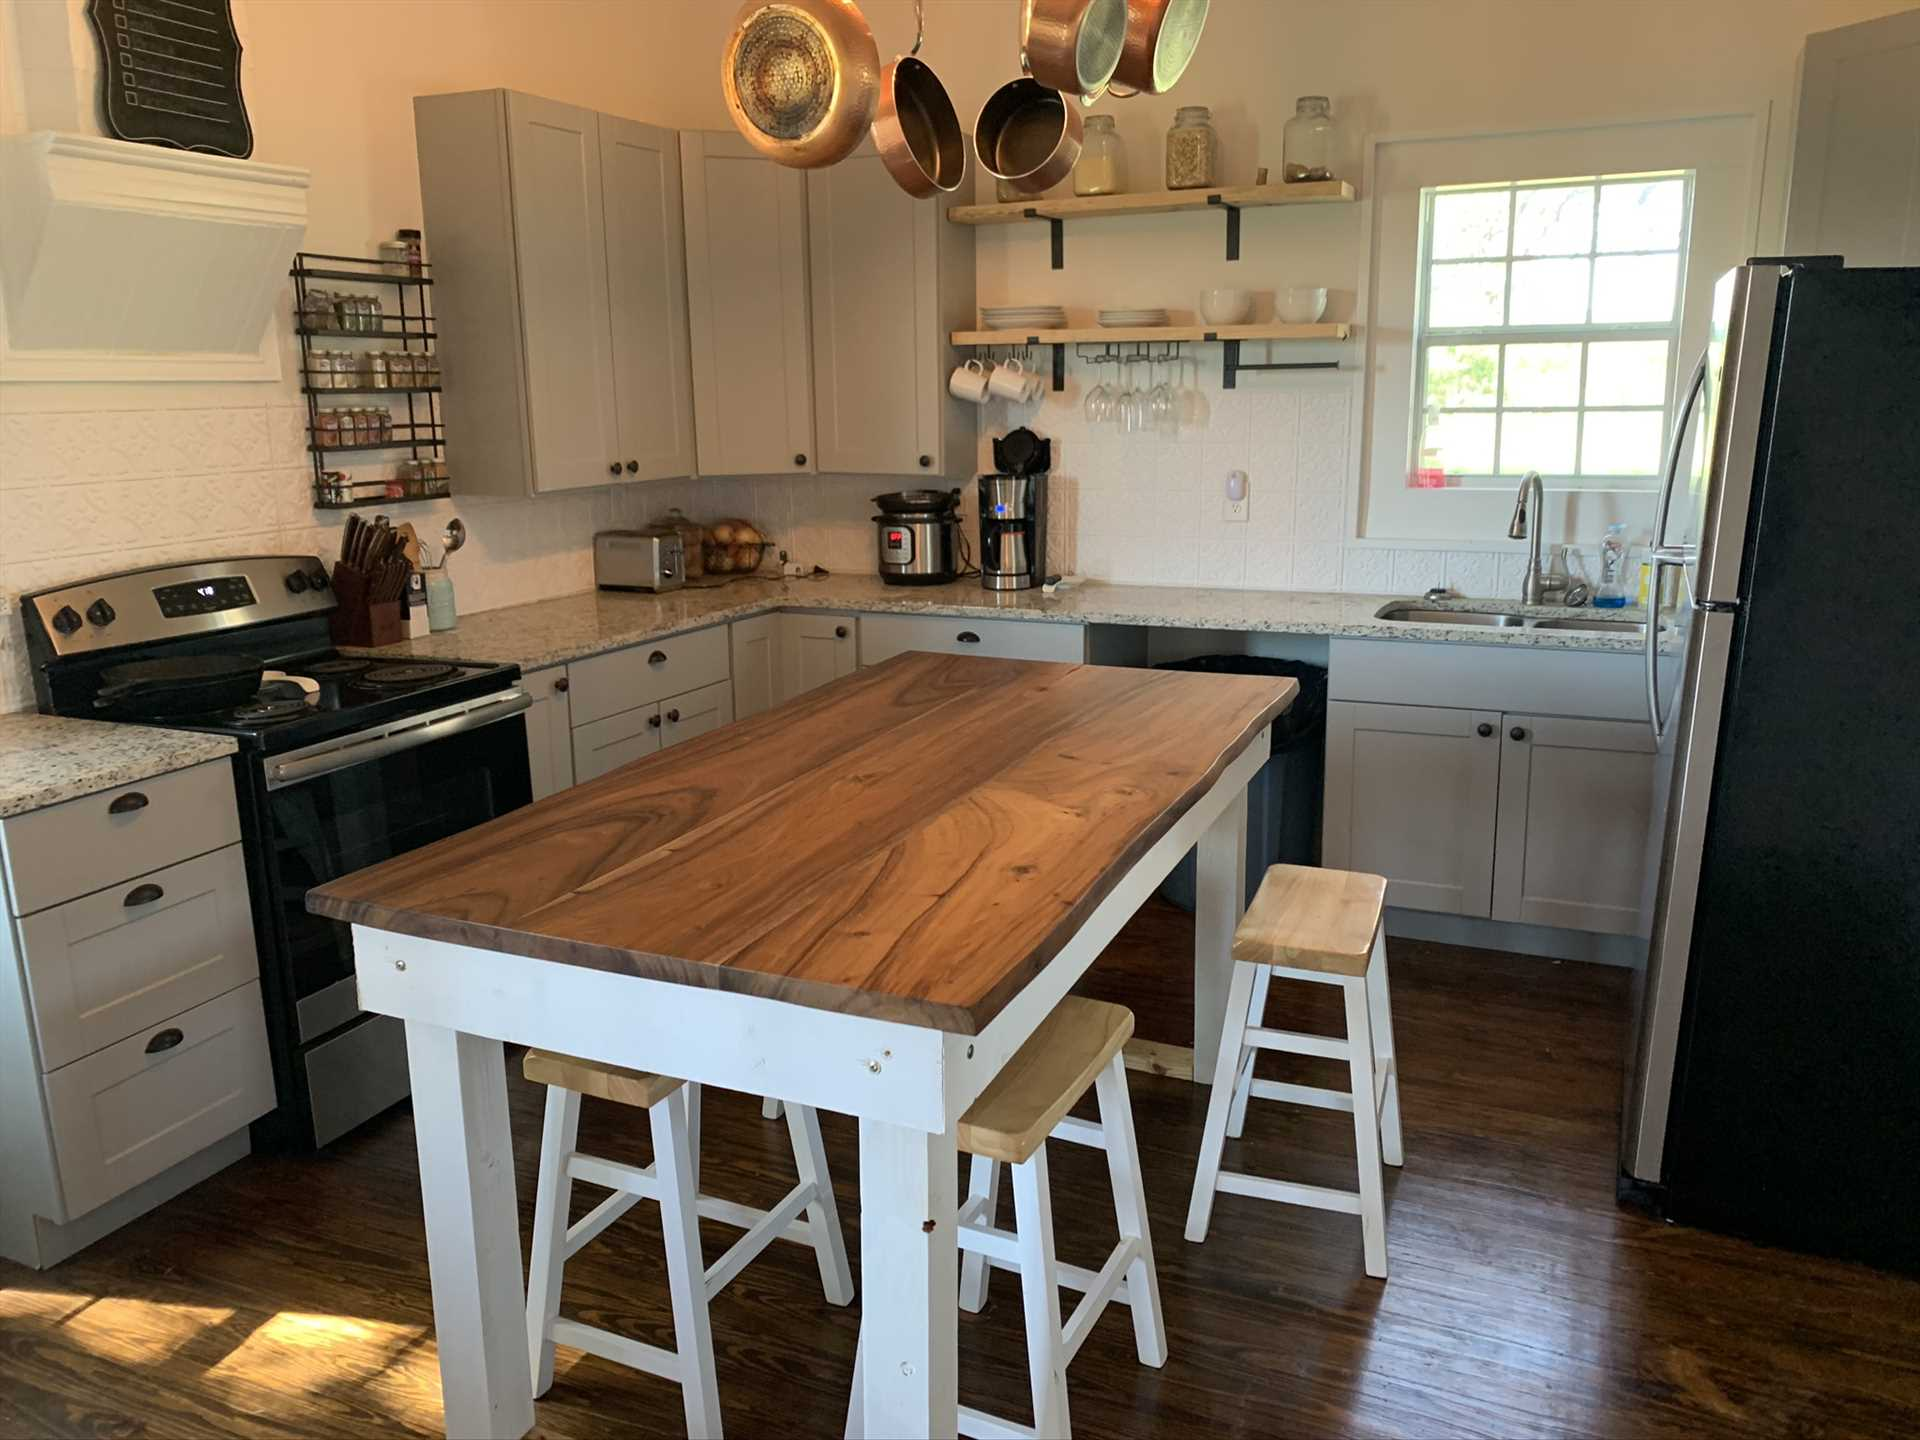 Old country charm and modern convenience come together in the fully-appointed kitchen here.